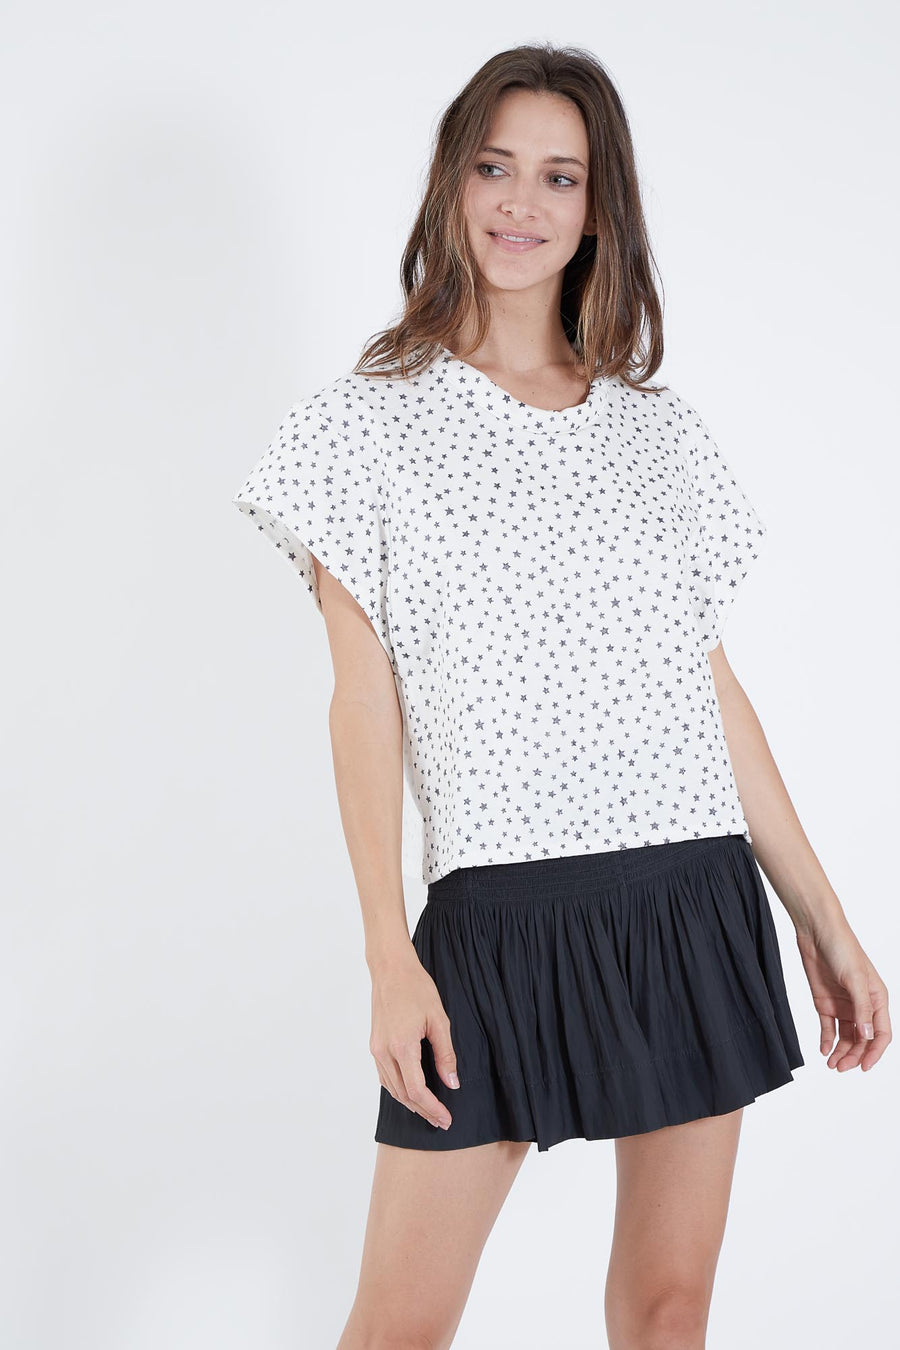 AUDREY TOP STARS *LIMITED*EDITION*